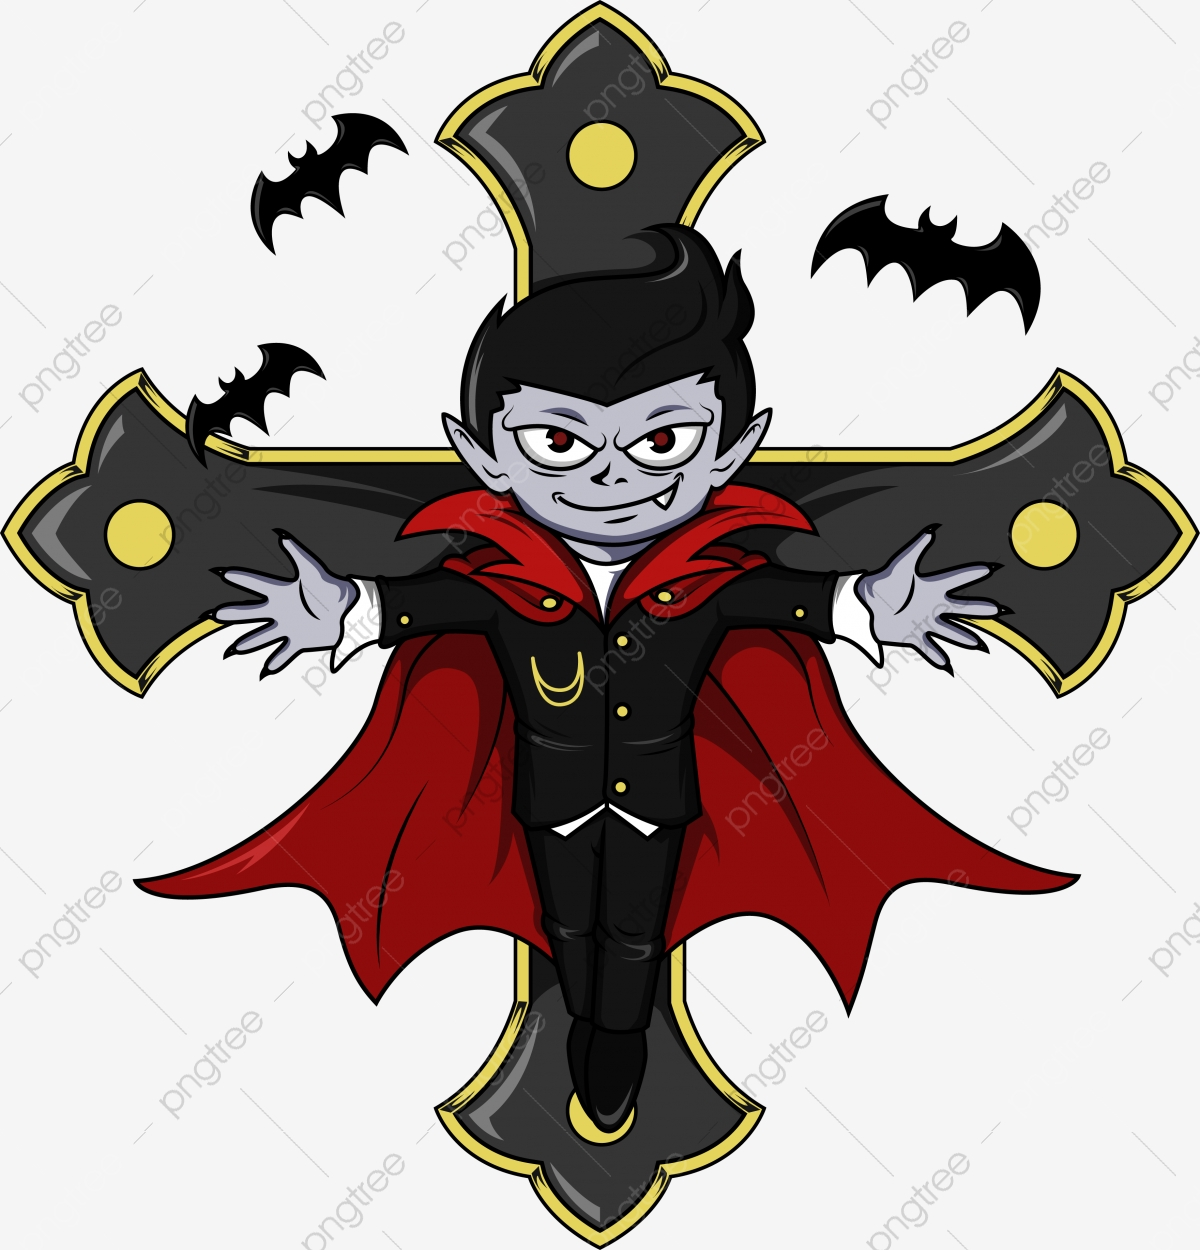 Halloween Vampire Happy Halloween Halloween Party Terror Party Bat Fly Png And Vector With Transparent Background For Free Download